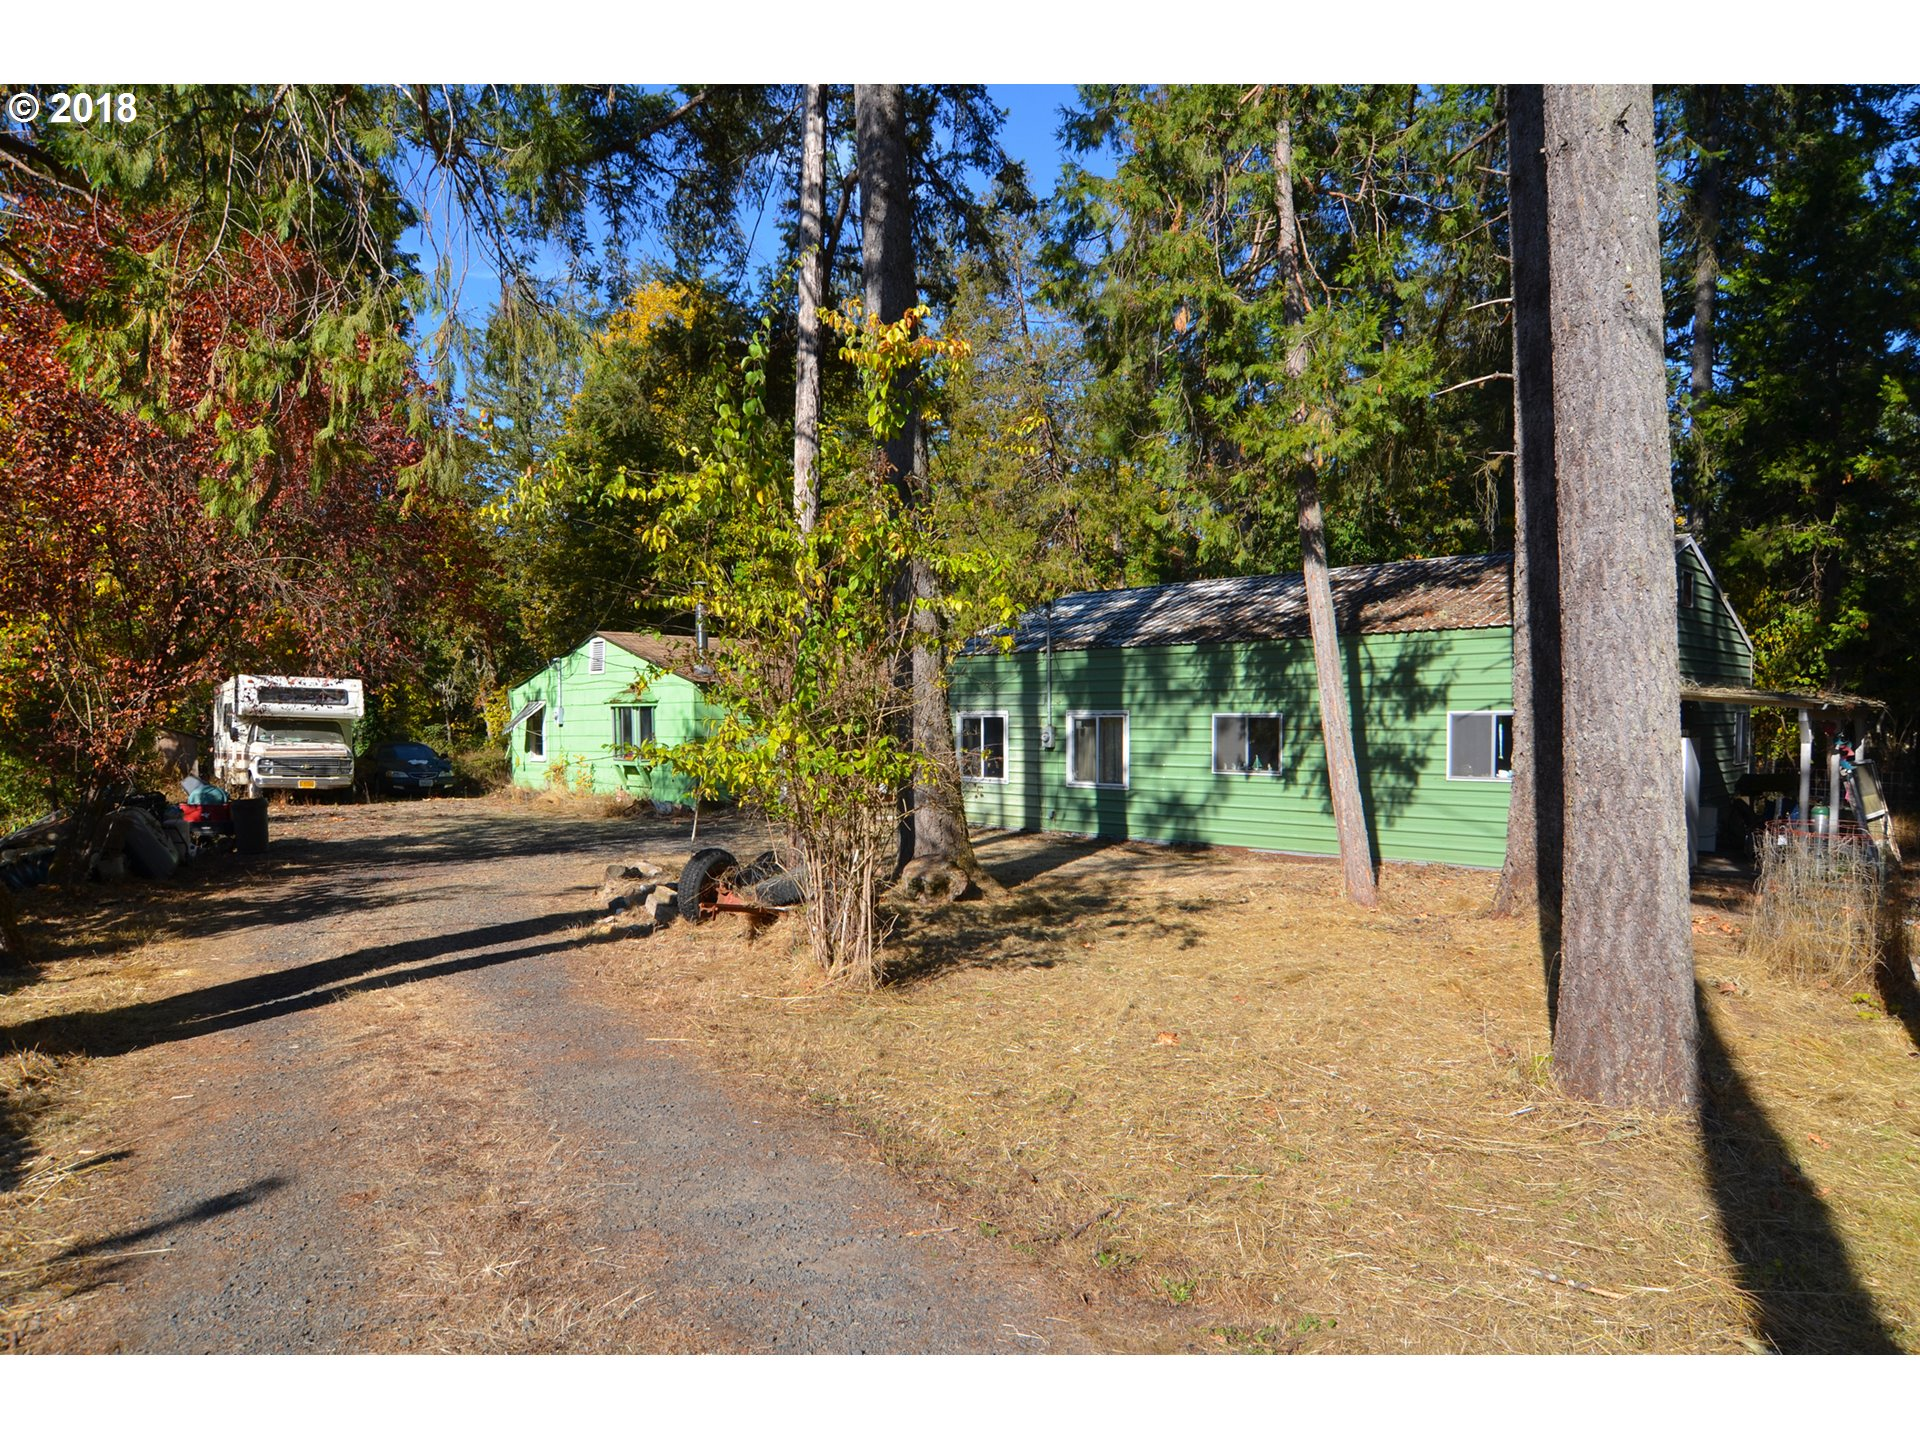 878 sq. ft 3 bedrooms 1 bathrooms  House For Sale,Dexter, OR